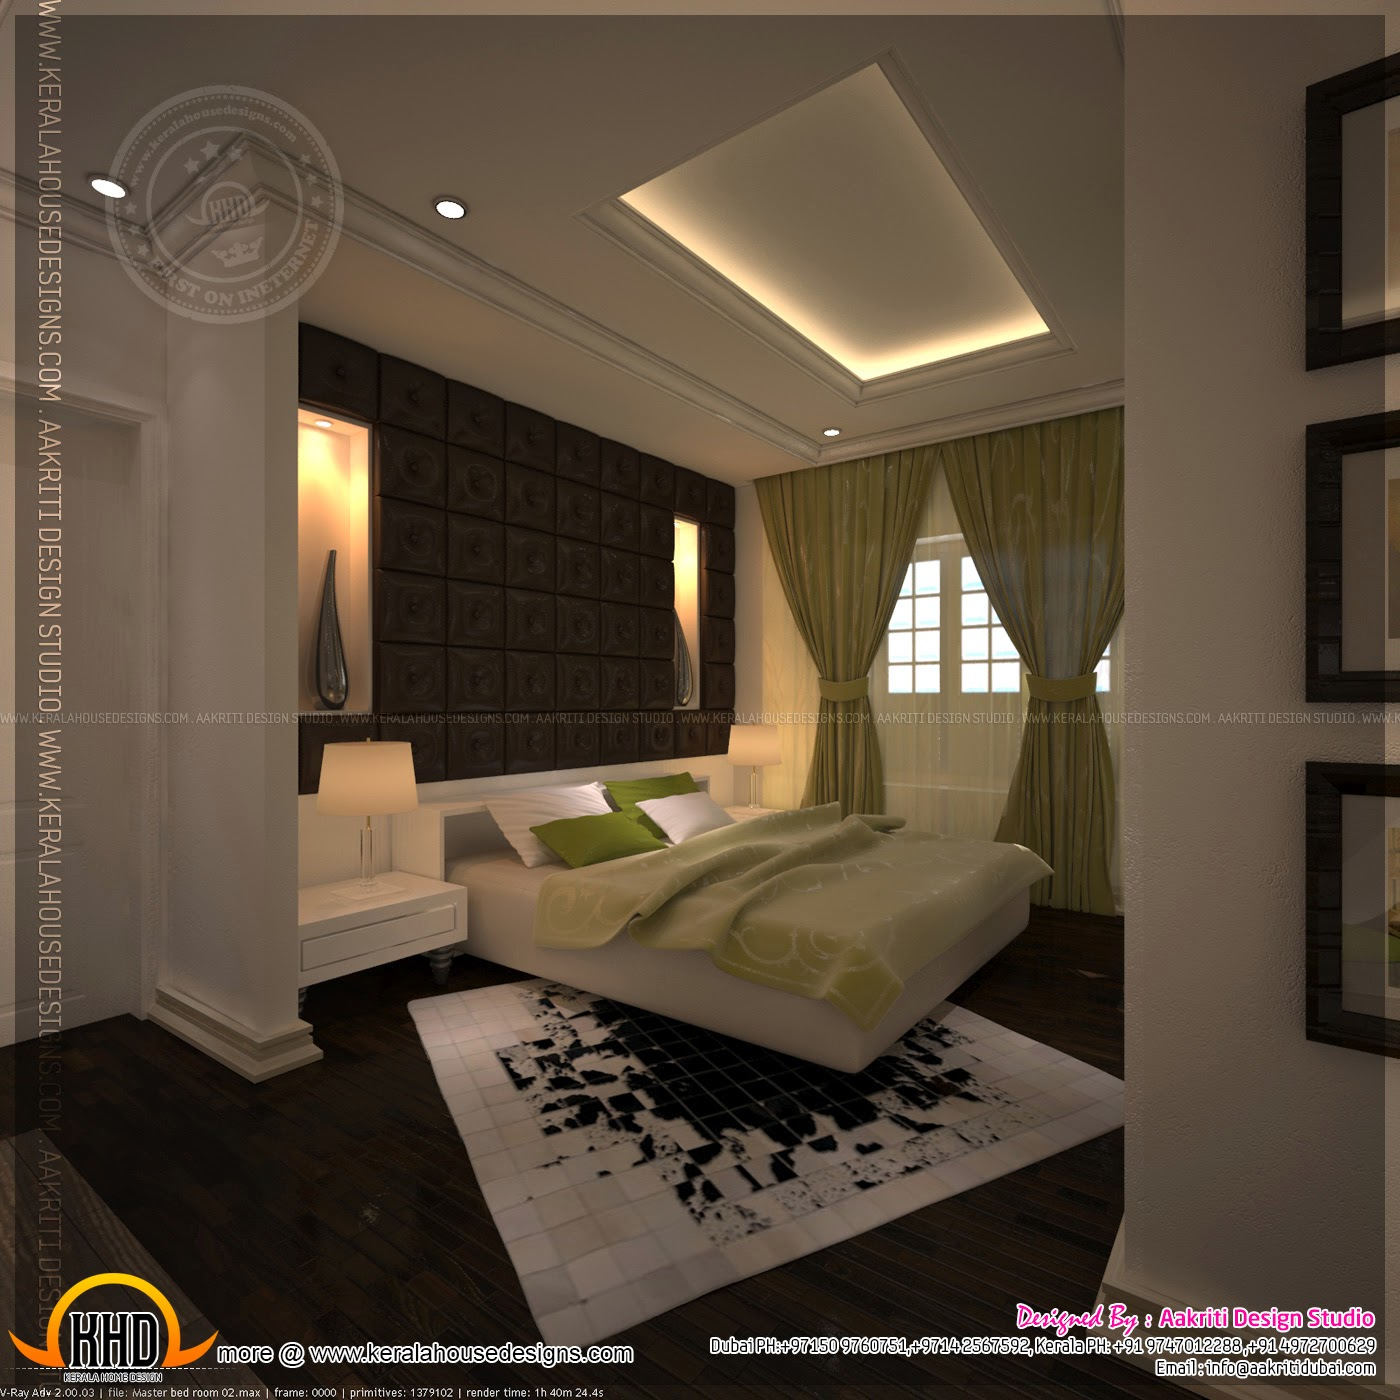 Master bedroom and bathroom interior design kerala home for House and home interior design